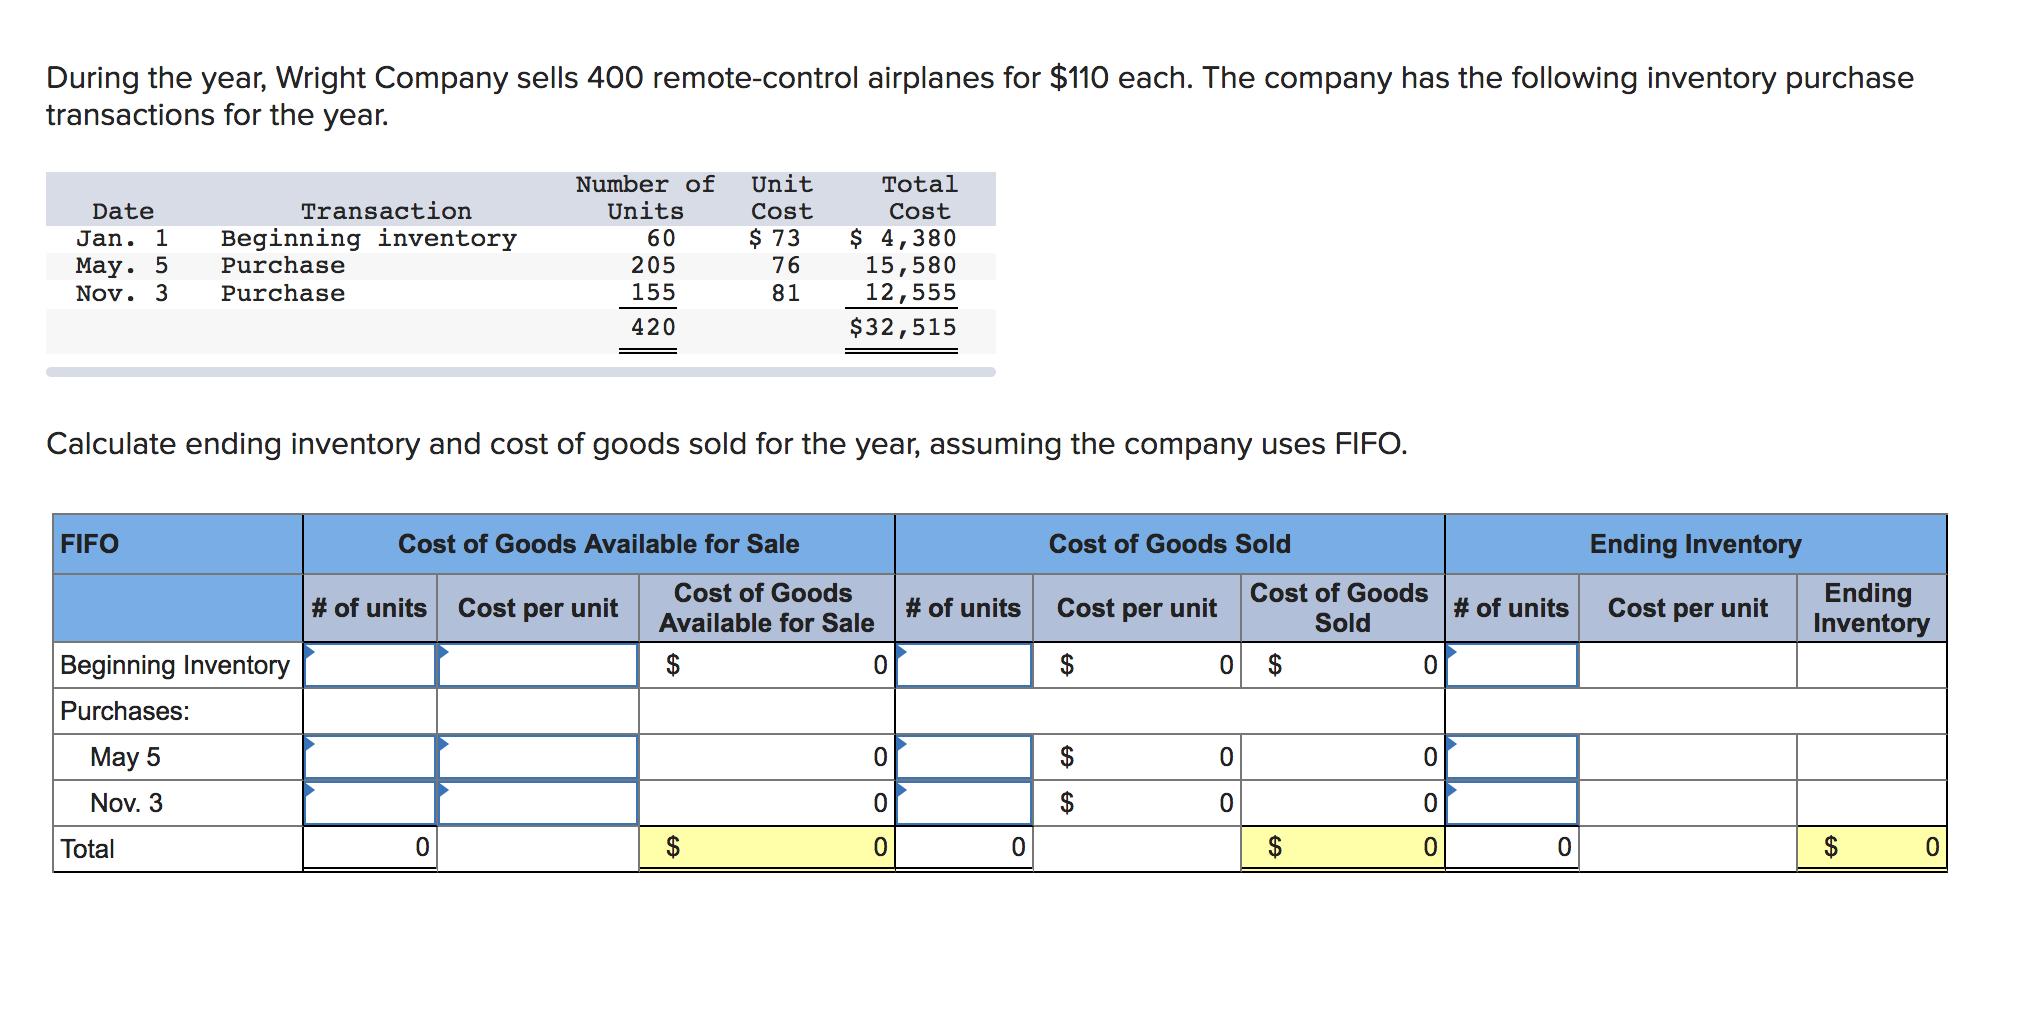 During the year, Wright Company sells 400 remote-control airplanes for $110 each. The company has the following inventory purchase transactions for the year. Number of Units Unit Total Transaction Cost Cost Date $ 73 76 Beginning inventory Purchase $4,380 15,580 12,555 Jan. 1 60 205 155 Мay. 5 Nov. 3 Purchase 81 $32,515 420 Calculate ending inventory and cost of goods sold for the year, assuming the company uses FIFO. FIFO Cost of Goods Available for Sale Cost of Goods Sold Ending Inventory Cost of Goods Ending Inventory Cost of Goods # of units # of units Cost per unit Cost per unit # of units Cost per unit Available for Sale Sold Beginning Inventory $ 0 Purchases: May 5 0 0 0 Nov. 3 0 0 $ $ $ 0 0 0 O Total EAEA